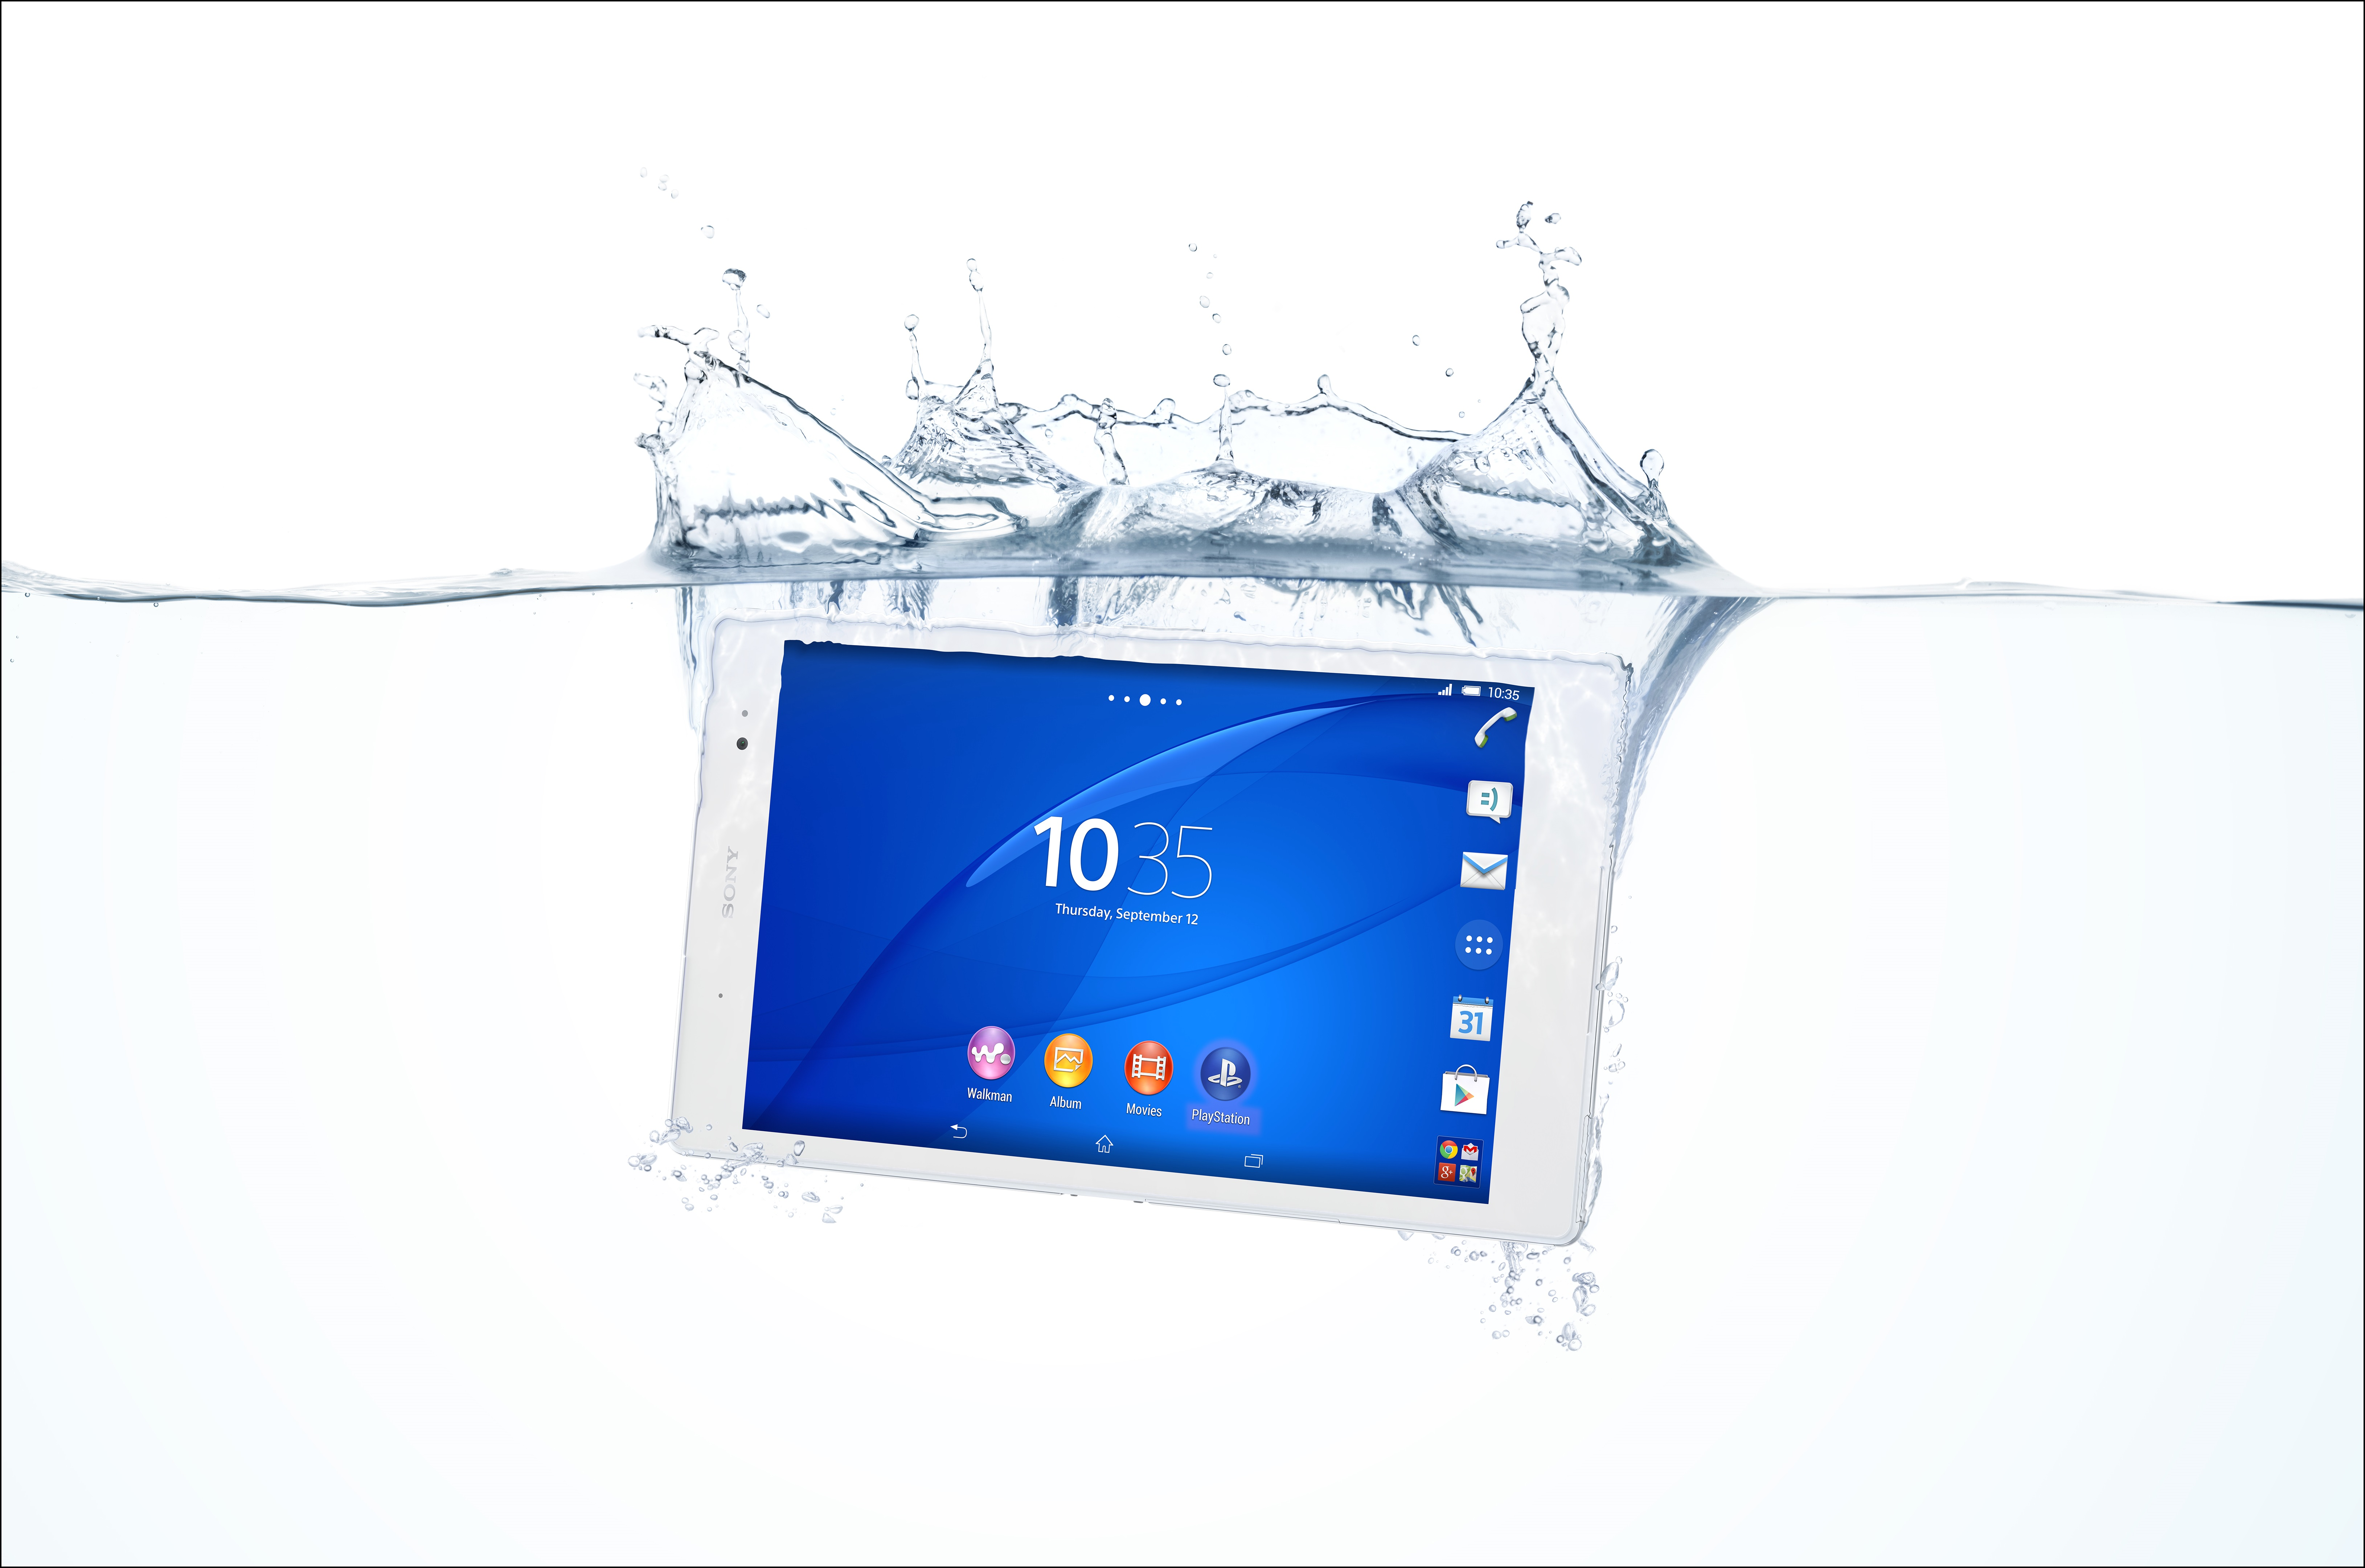 Xperia Z3 tablet compactのレビュー